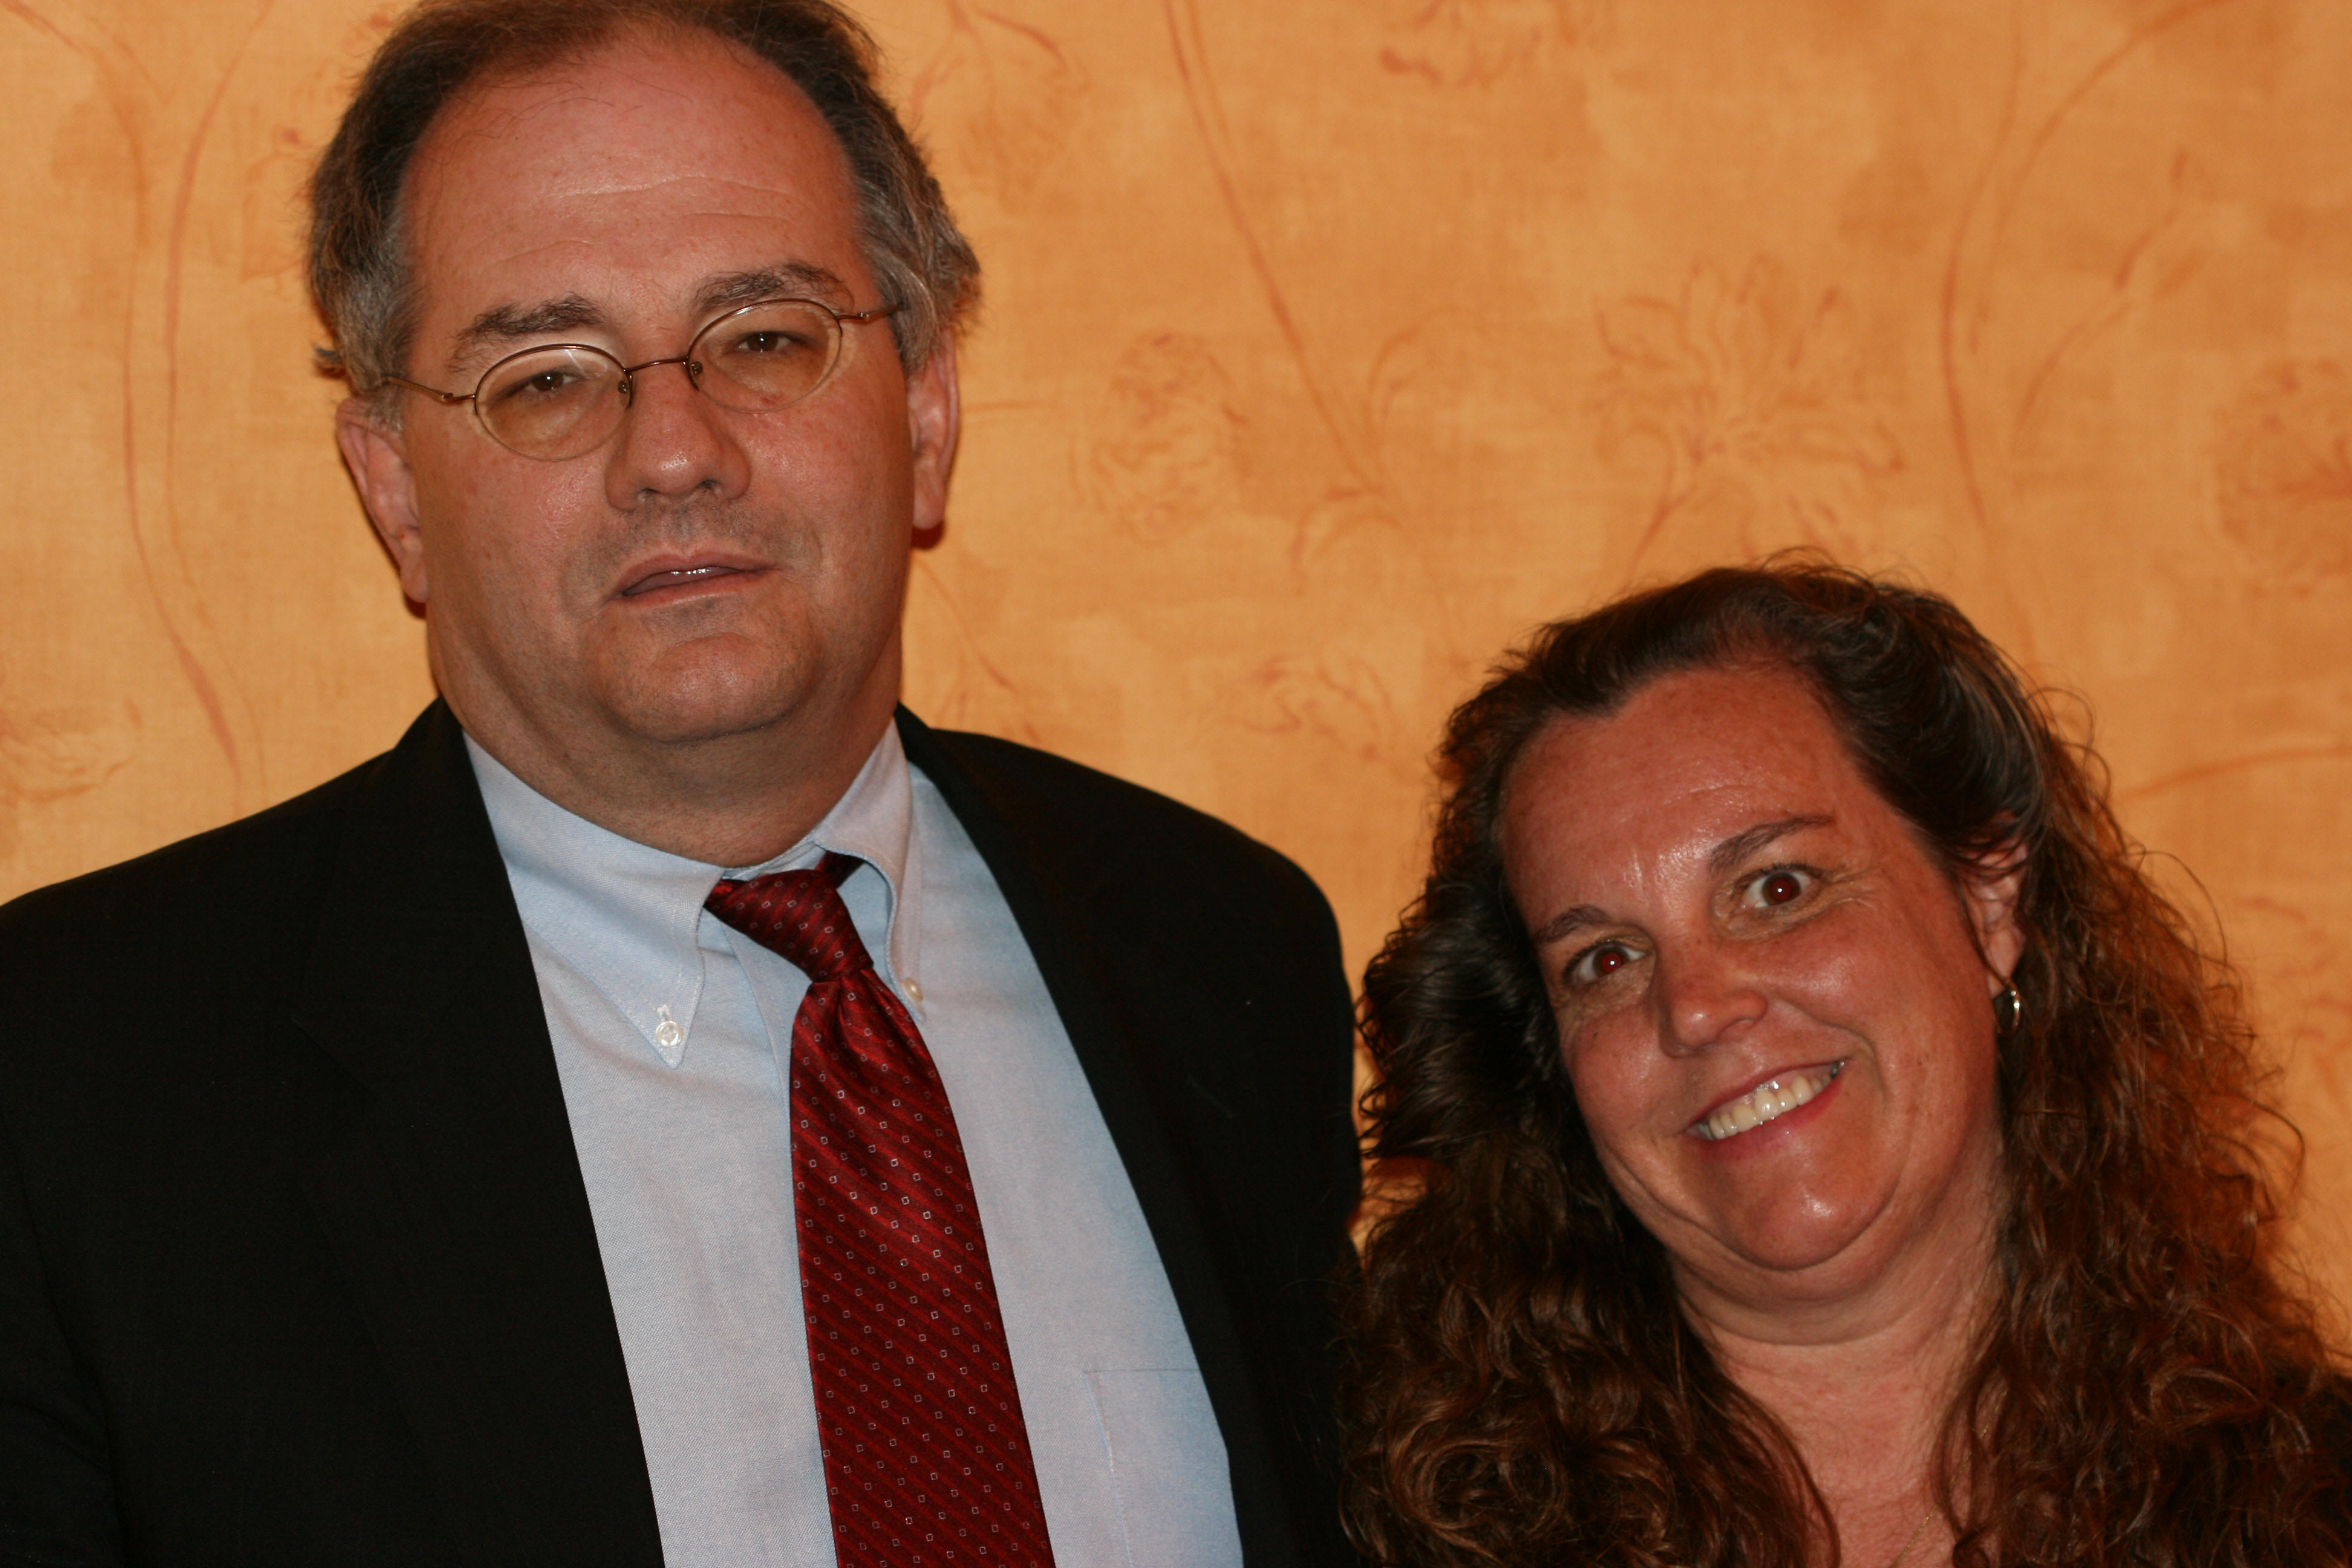 dr james w forsythe md here s a photo of dr forsythe s attorney kevin mirch his wife also an attorney who works him on every case